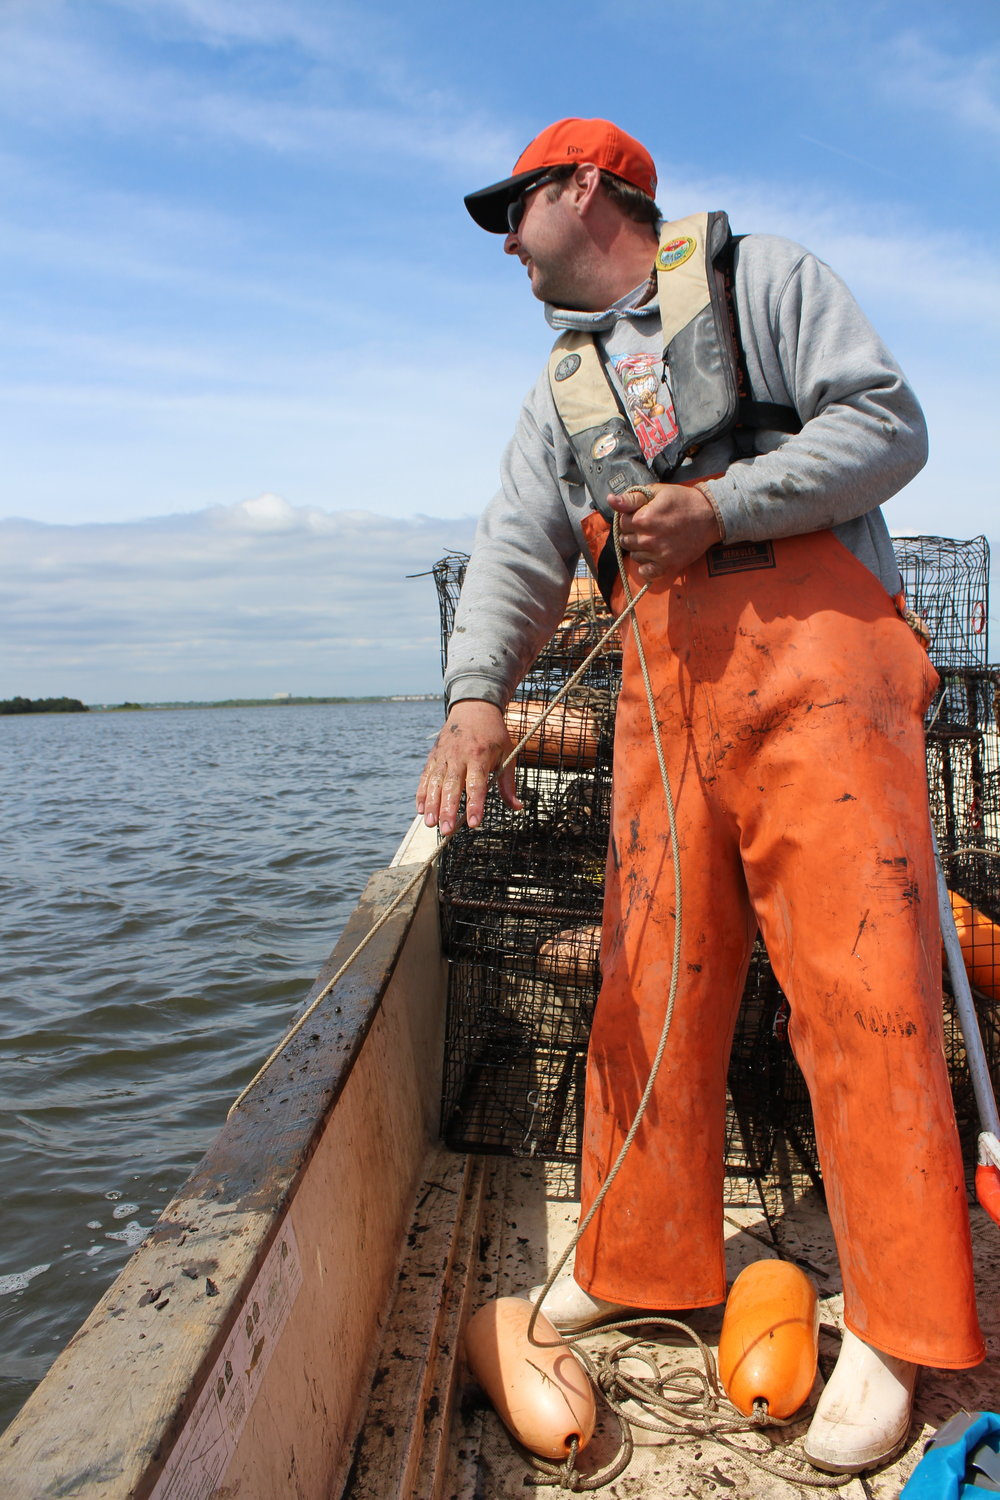 Stevie Czwartacki hauls in a crab trap on the Ashley River. The ever-fashionable necessity of foul weather gear (the orange overalls)is a subject for another blog post.(Photo: E. Weeks/SCDNR)